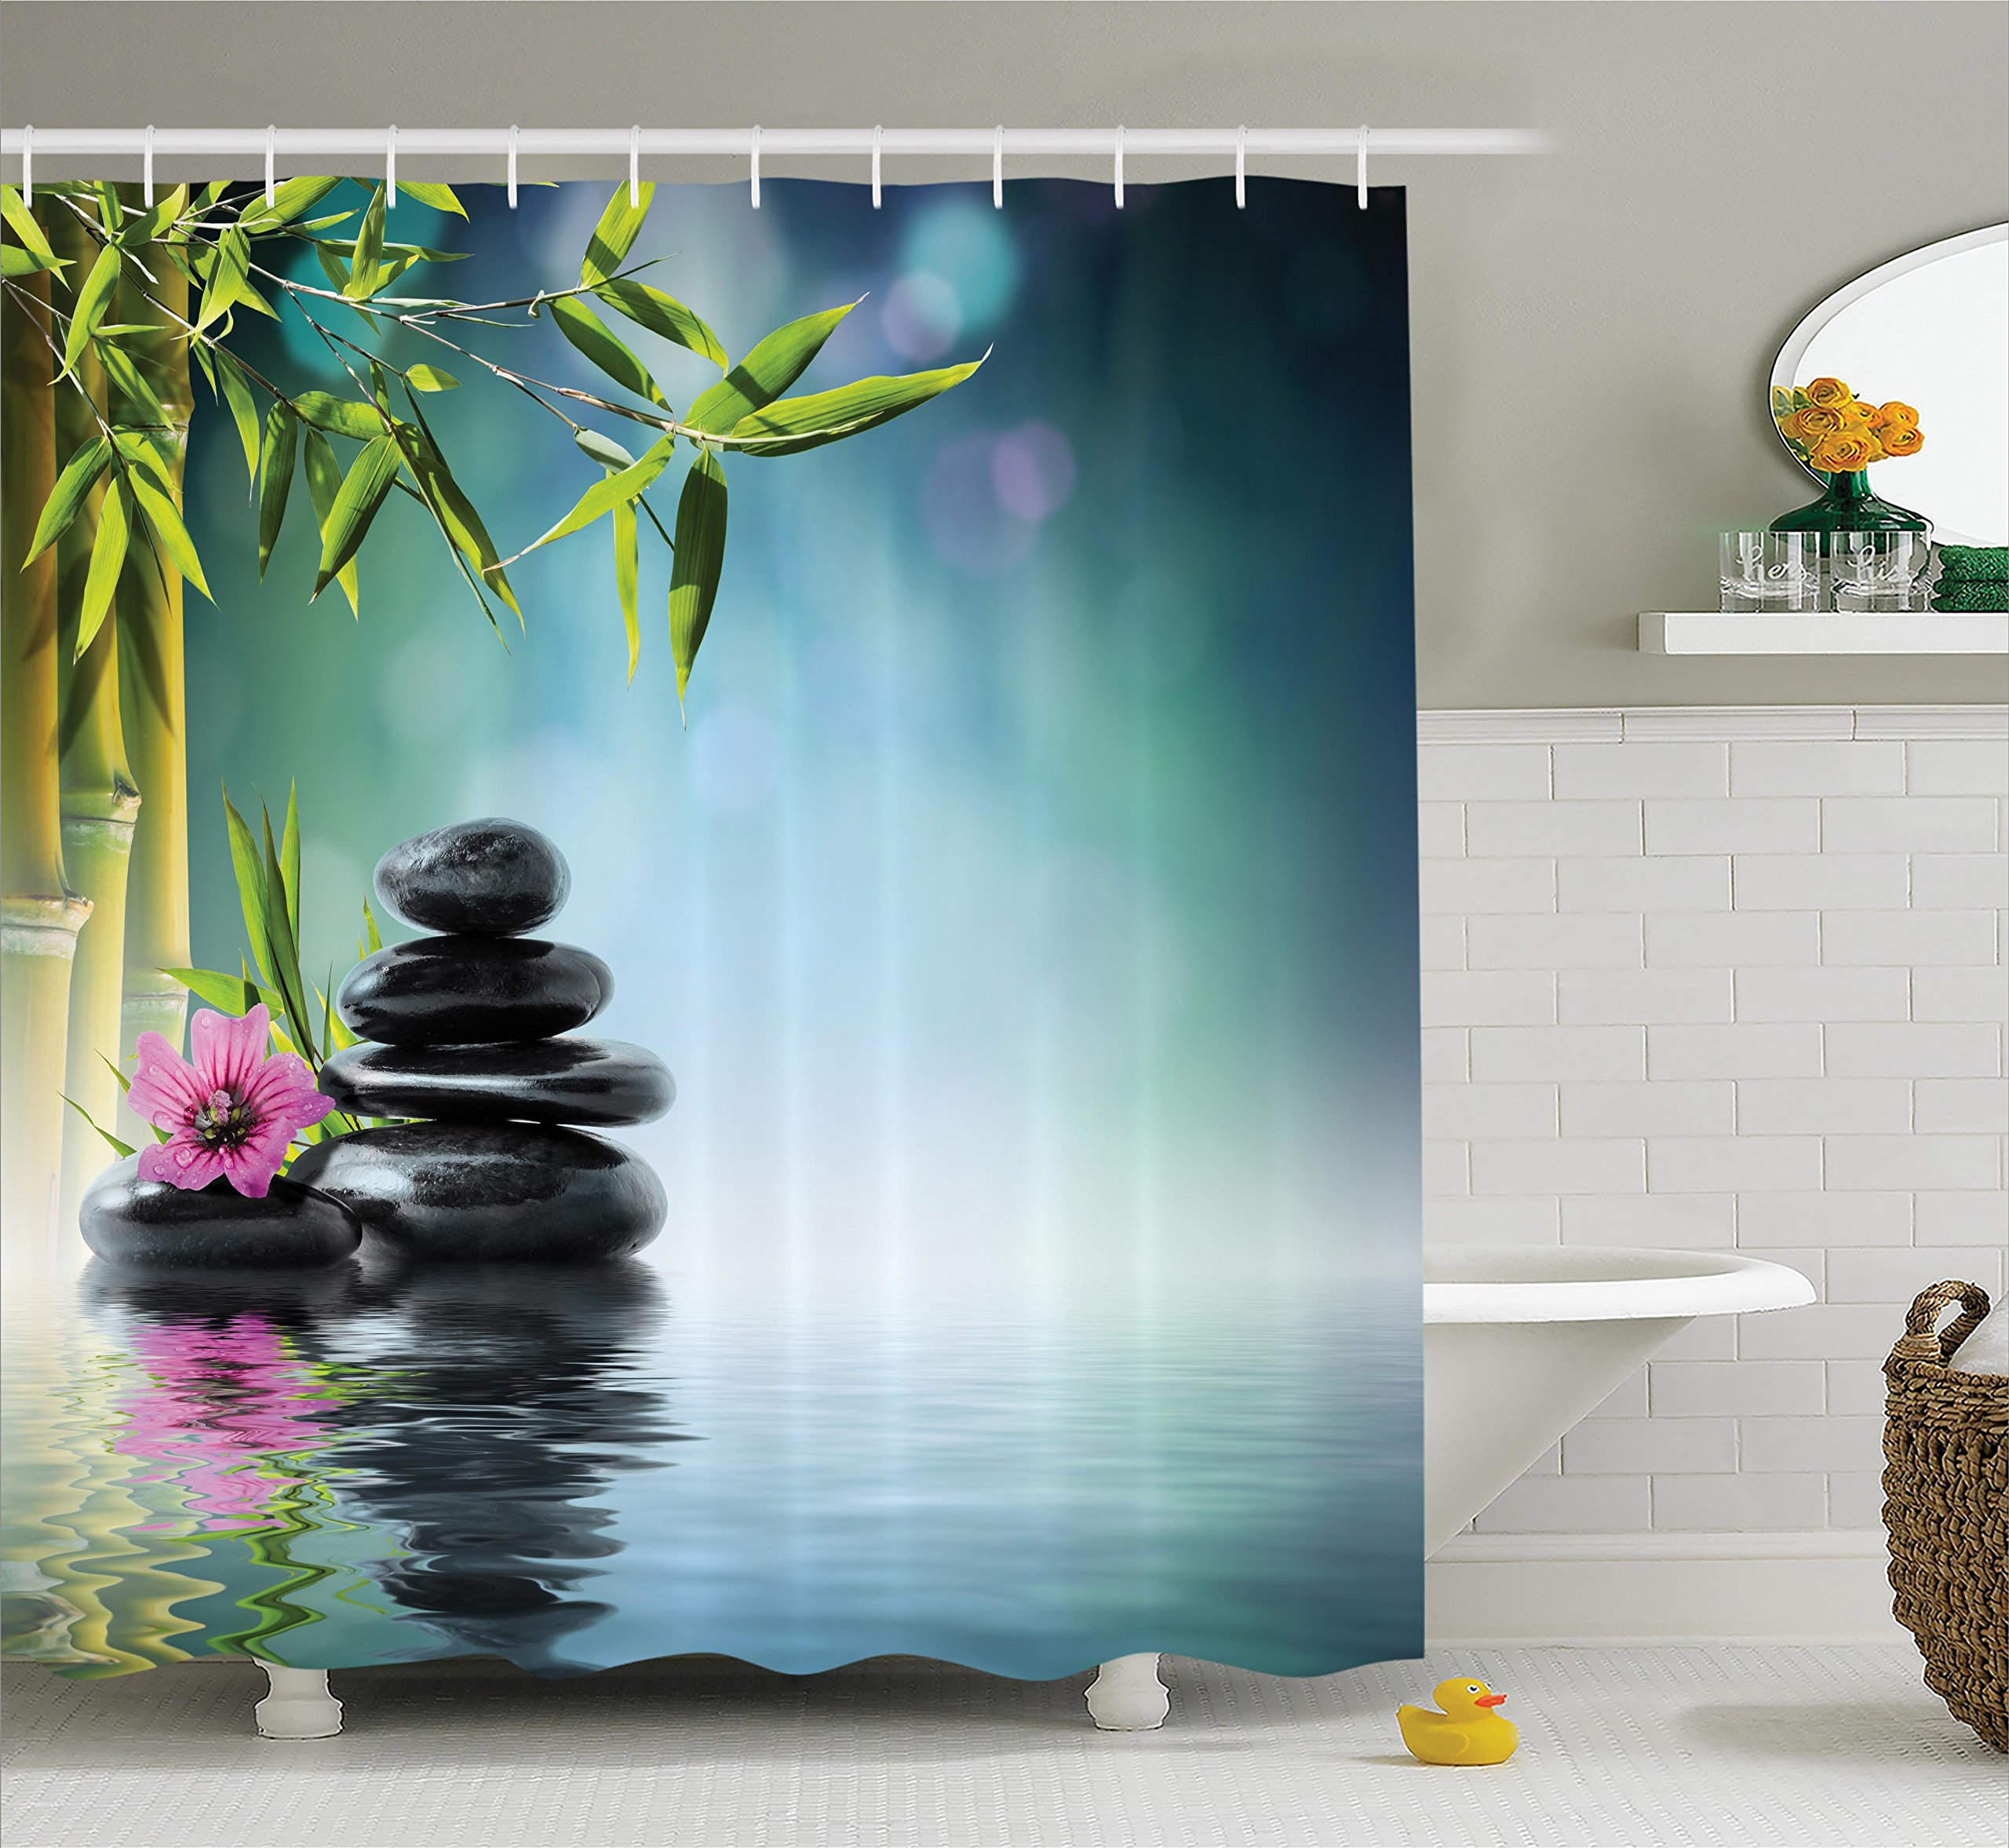 Ambesonne Spa Decor Shower Curtain Set, Tower Stone and Hibiscus with Bamboo On The Water Blurred Background, Bathroom Accessories, 69W X 70L Inches